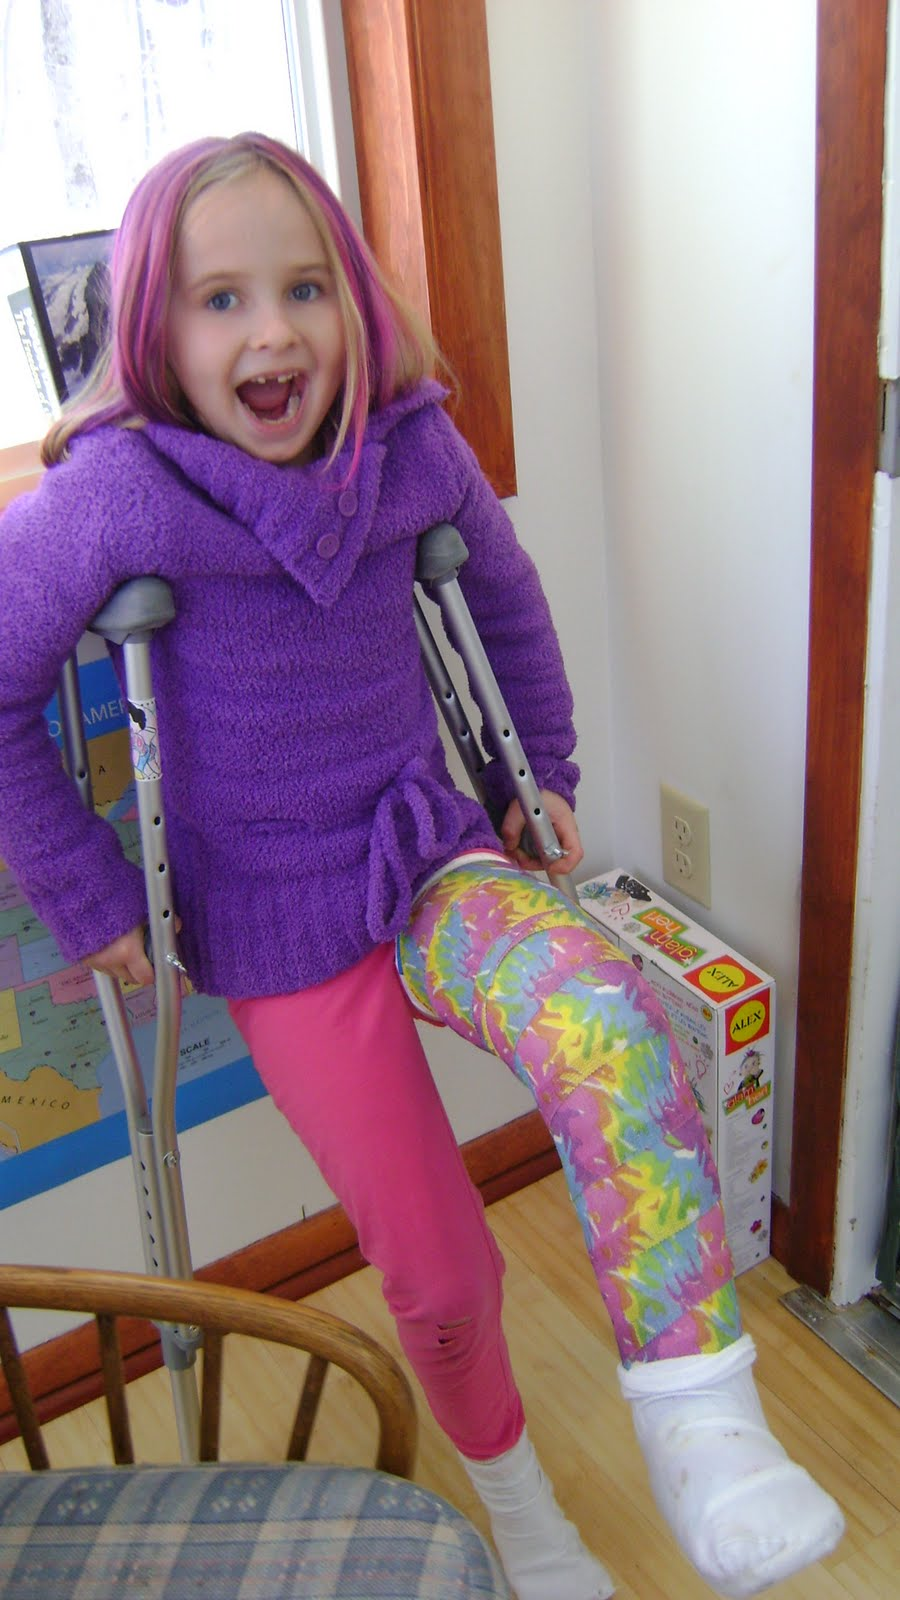 Colored cast - Friday February 4 2011